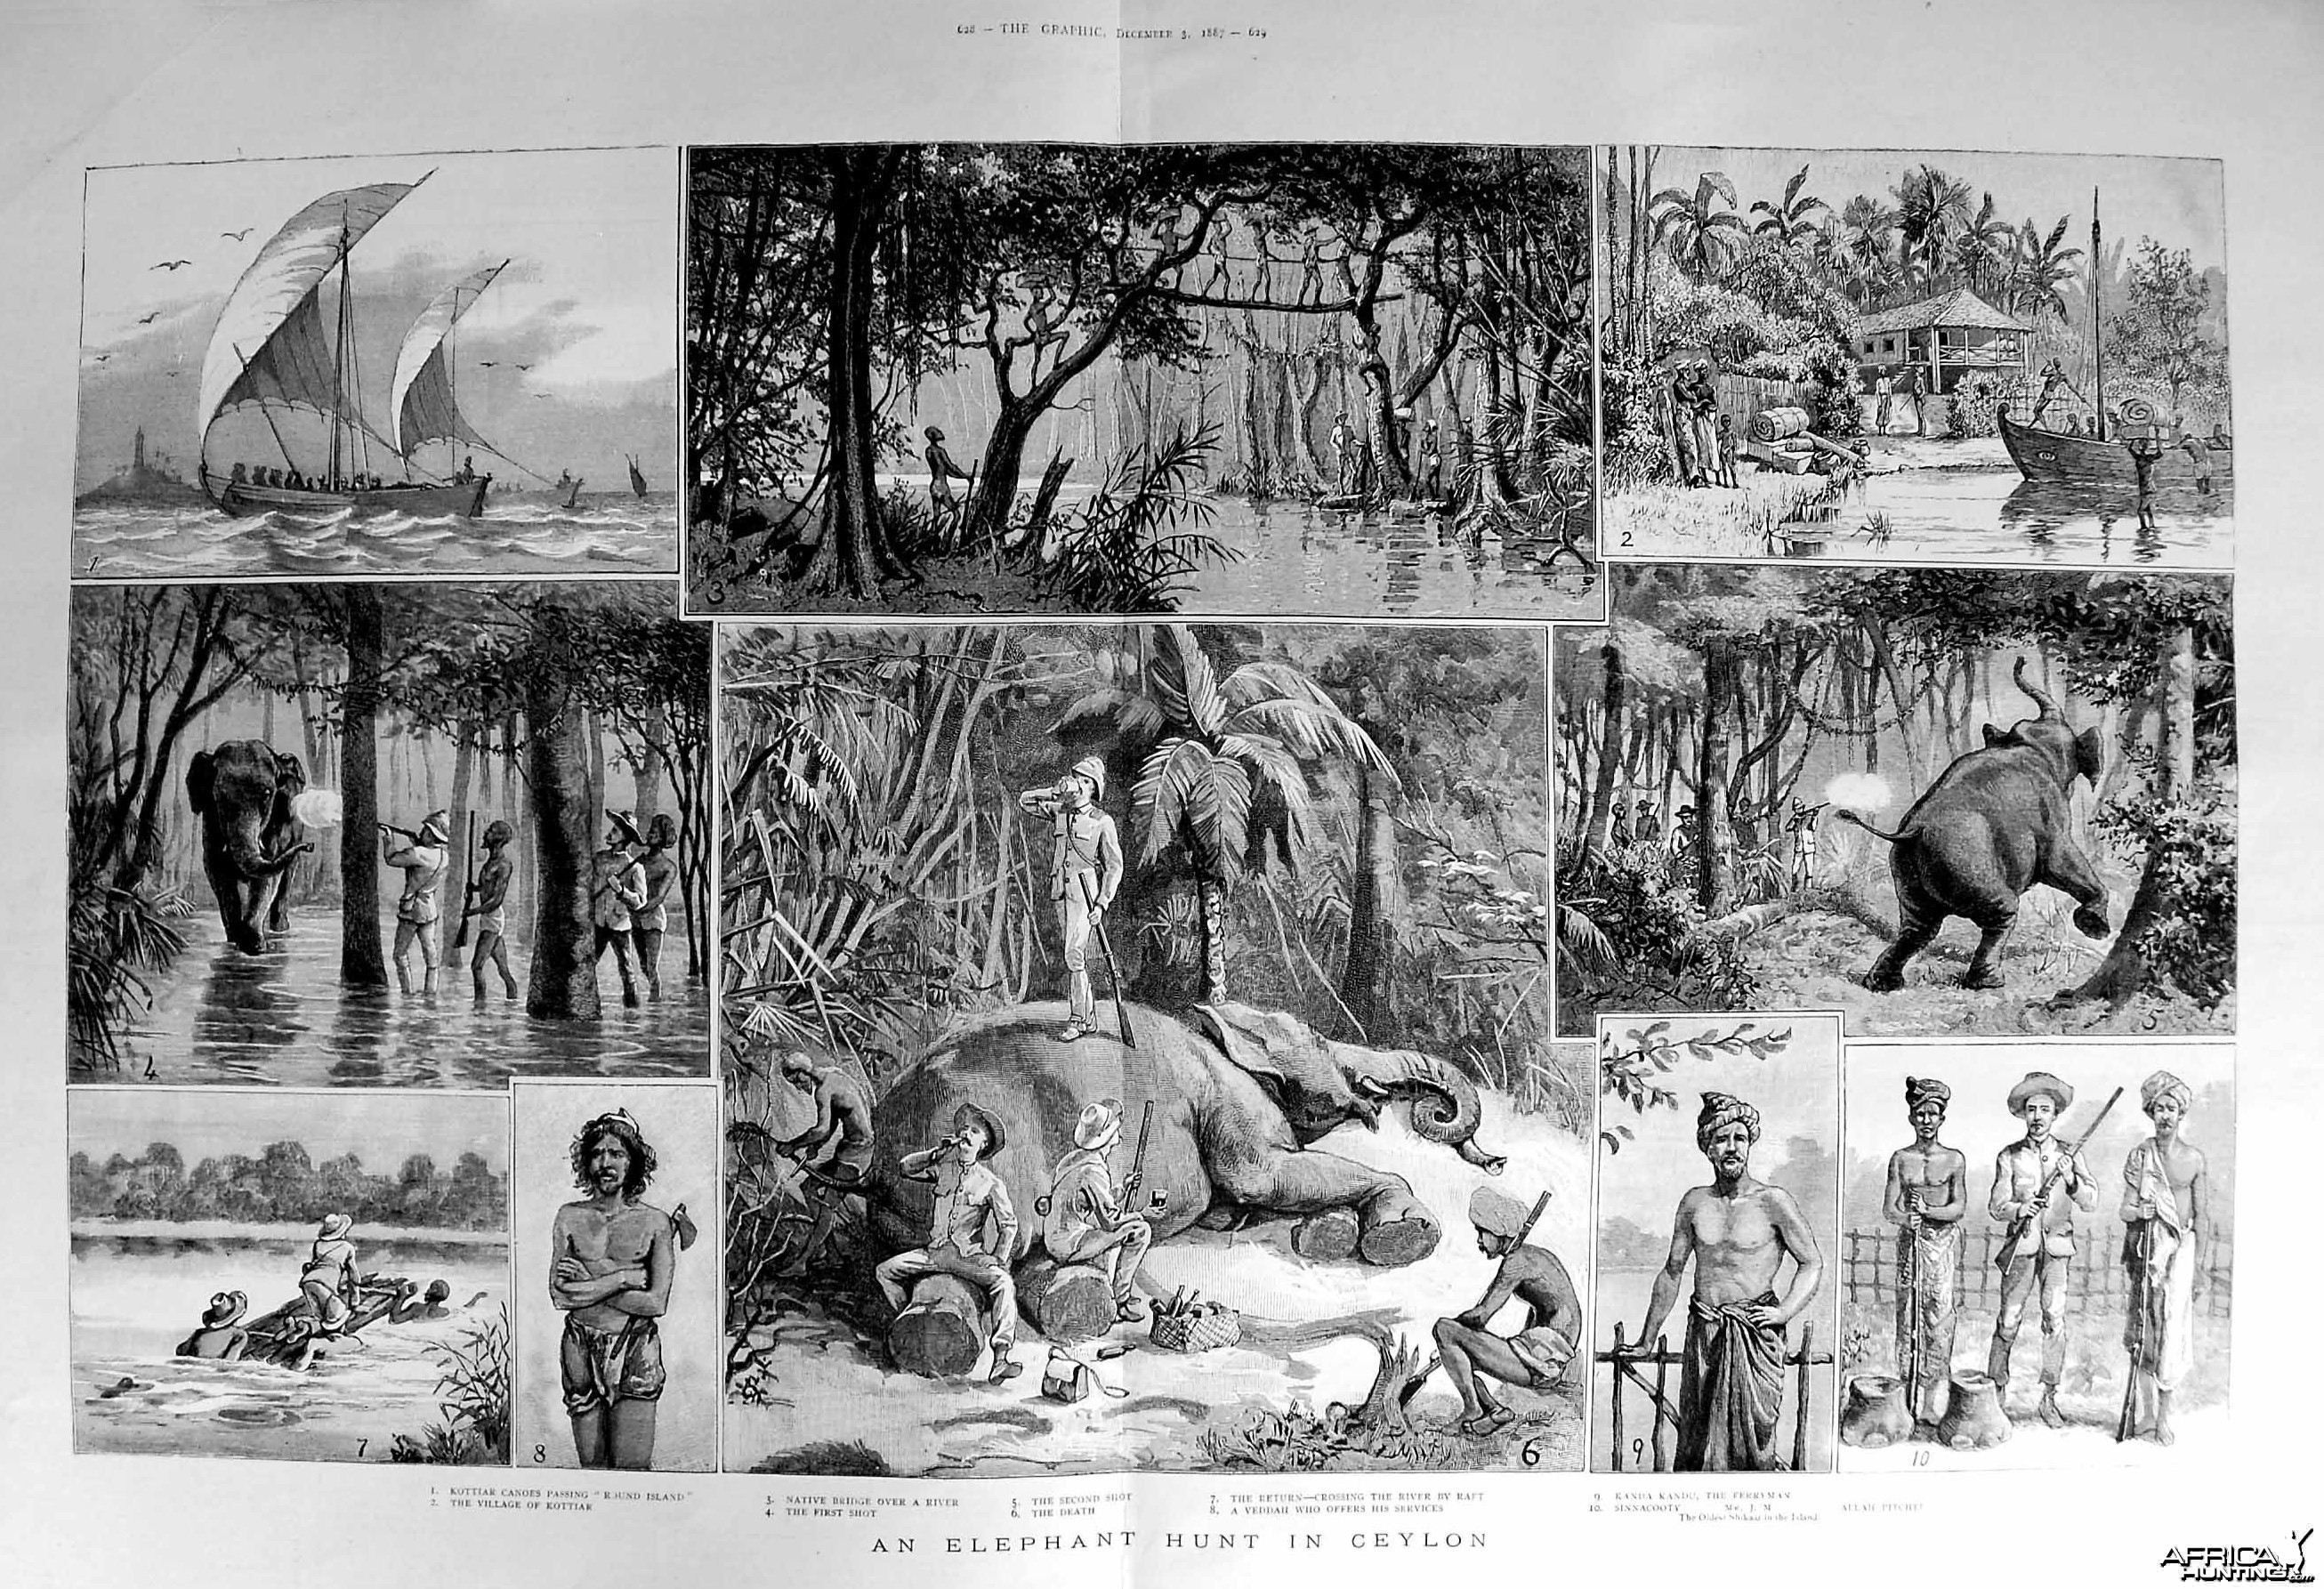 An Elephant Hunt in the Ceylon